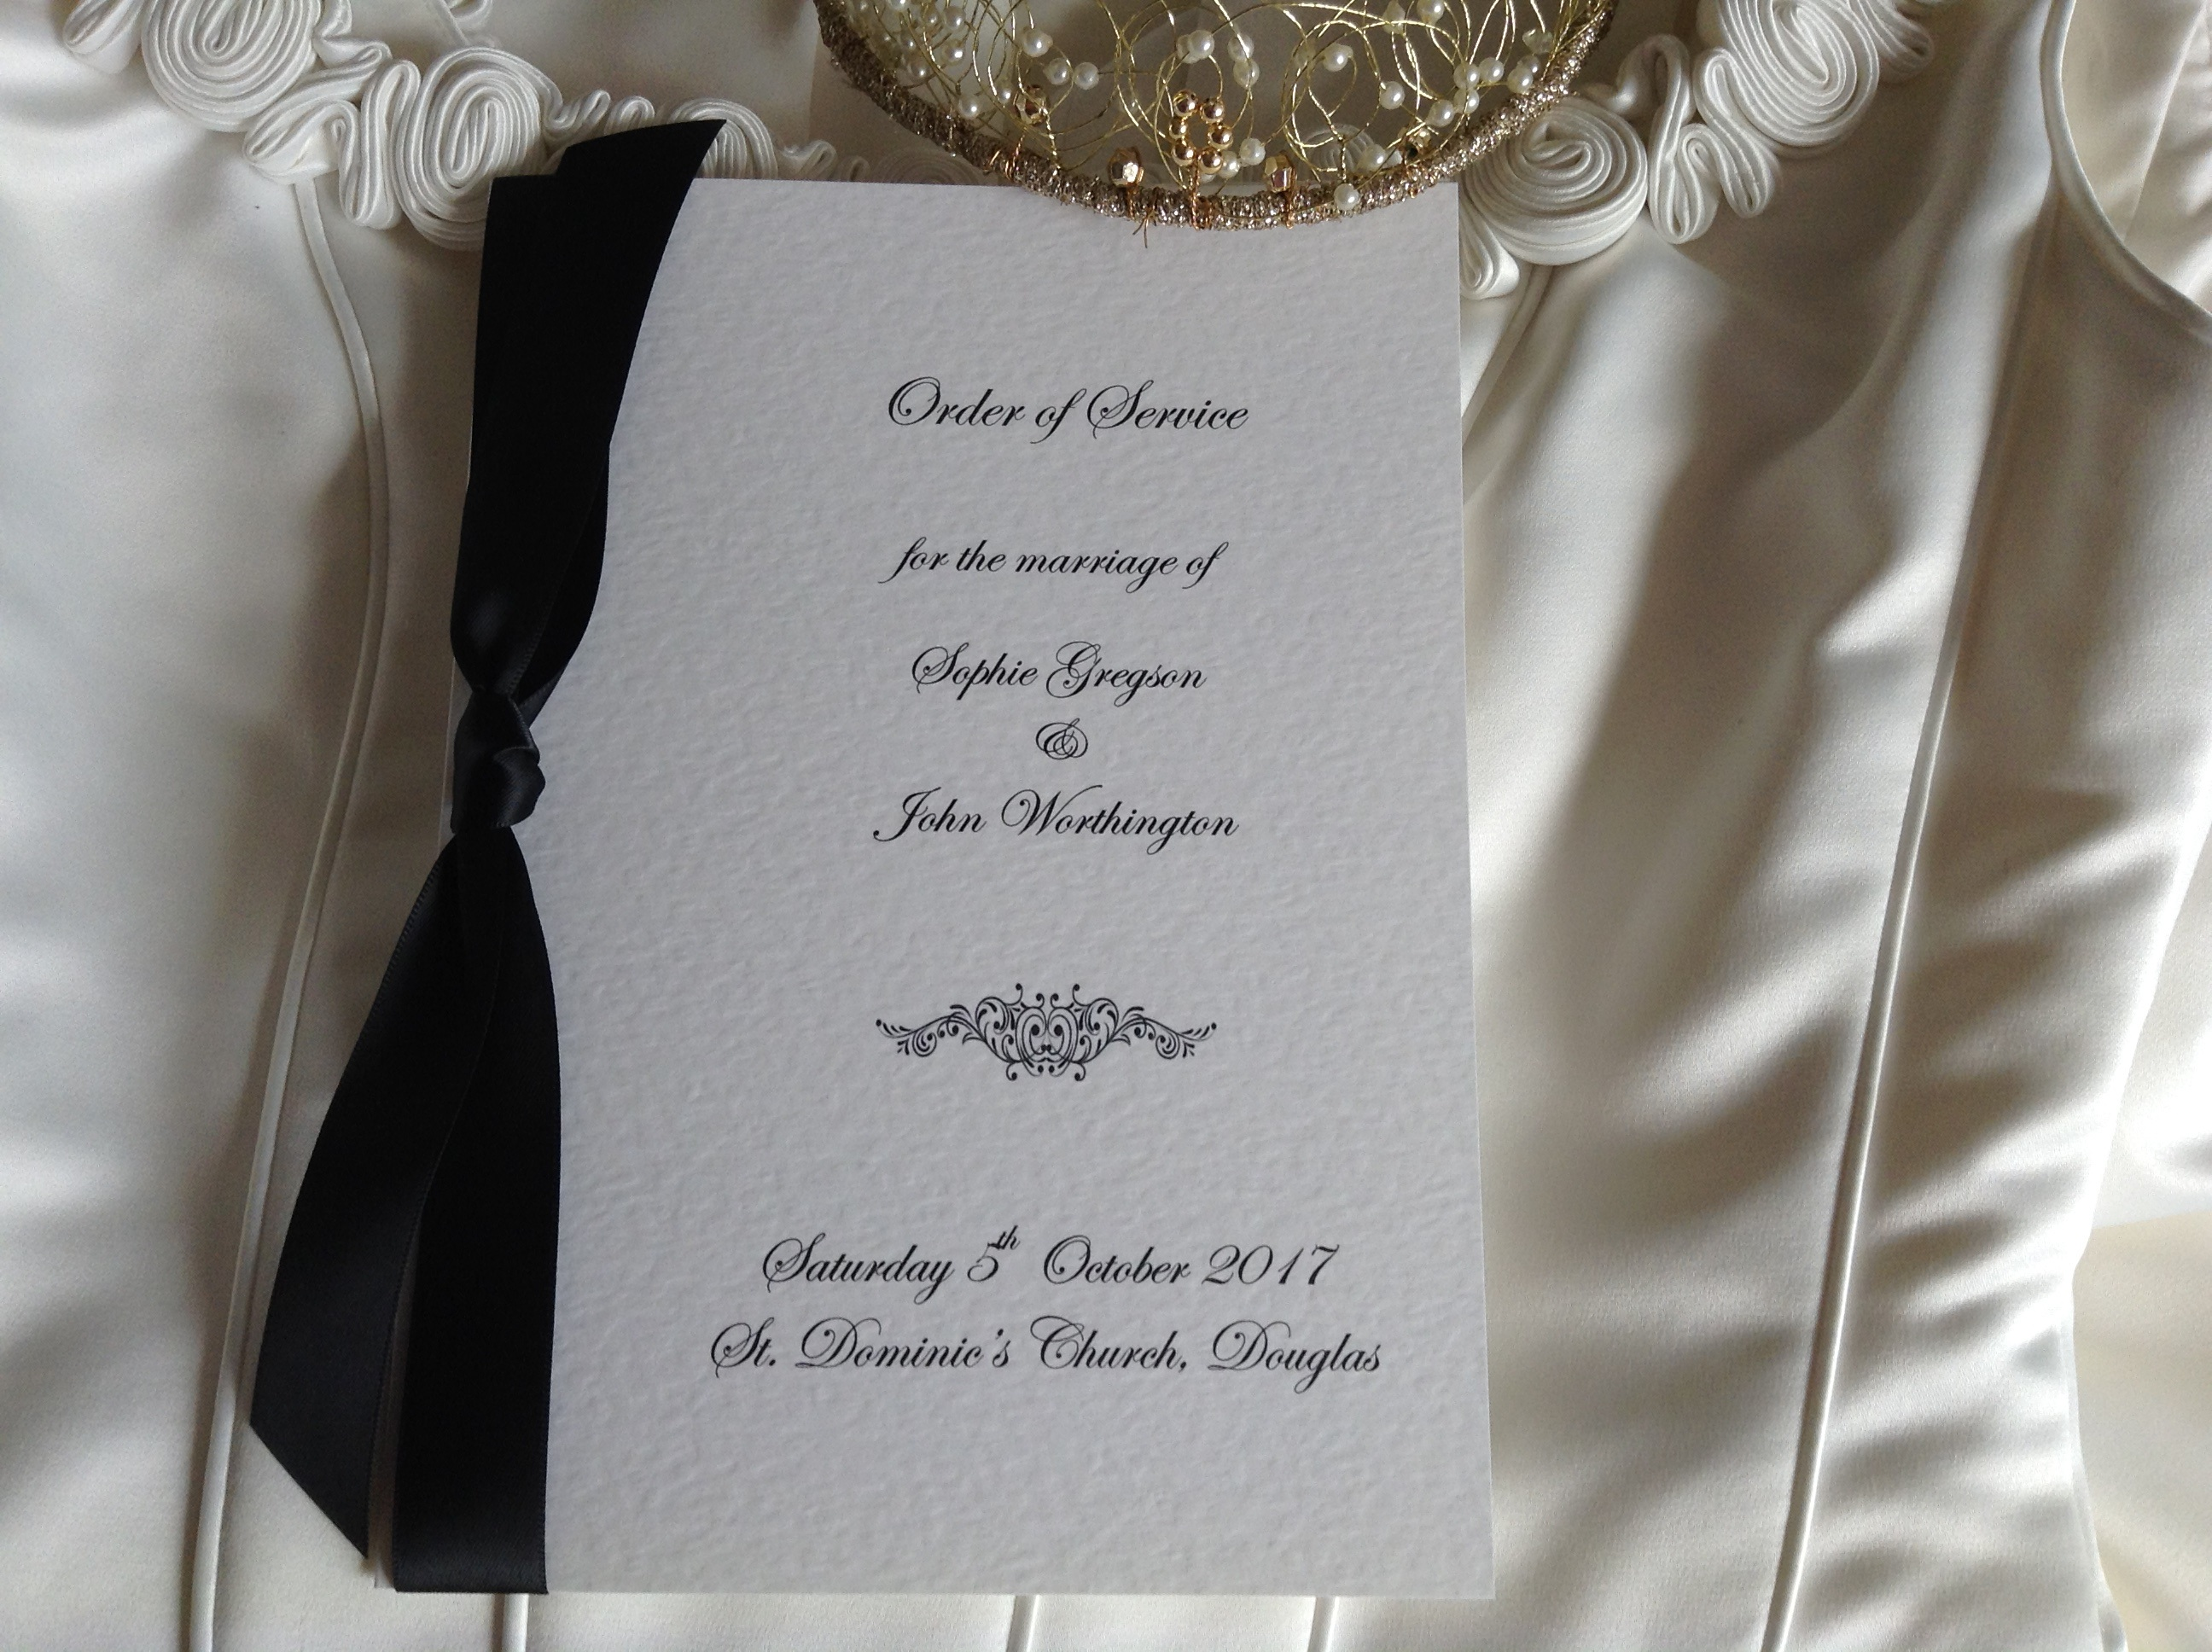 Motif Order of Service Book with Satin Ribbon